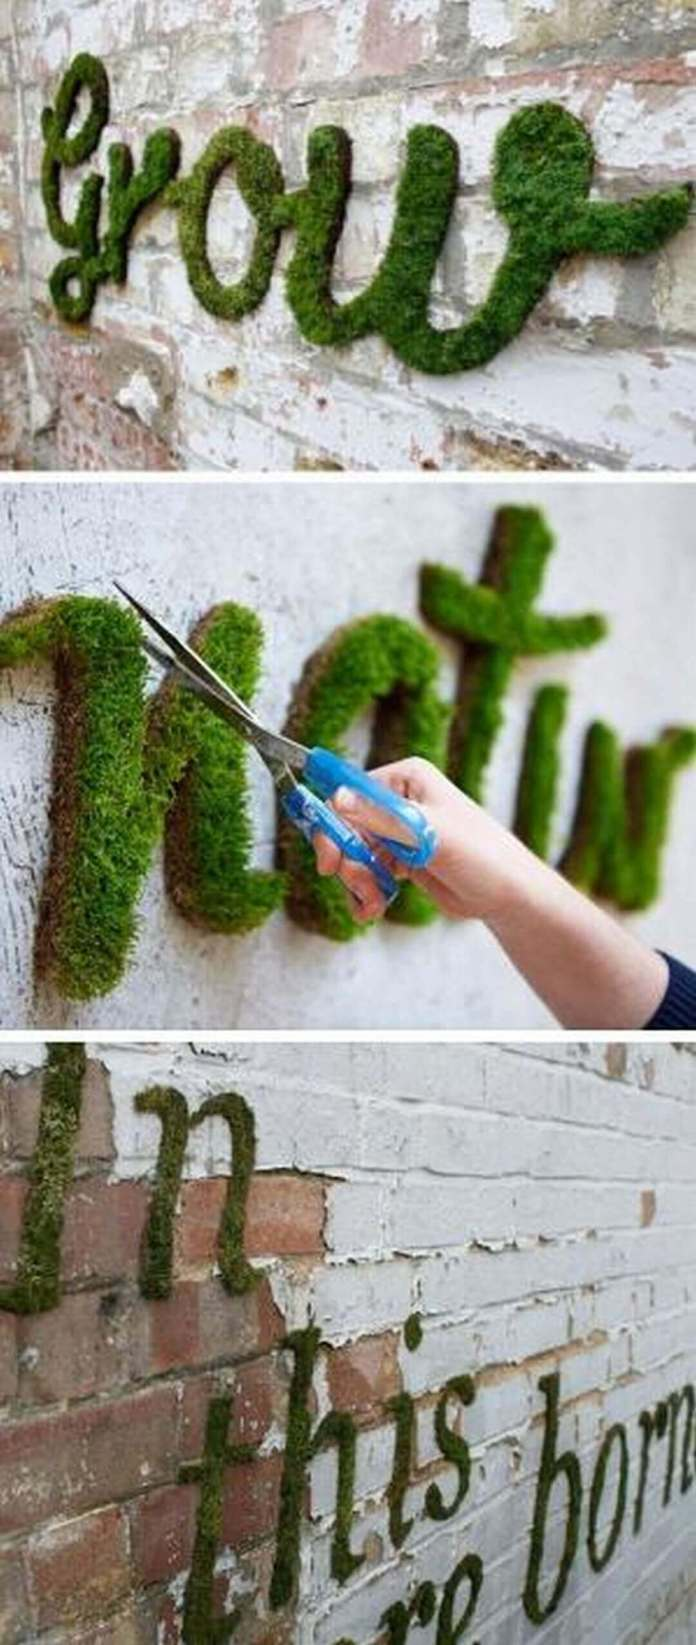 Unique Garden Sign Idea with Moss | Funny DIY Garden Sign Ideas